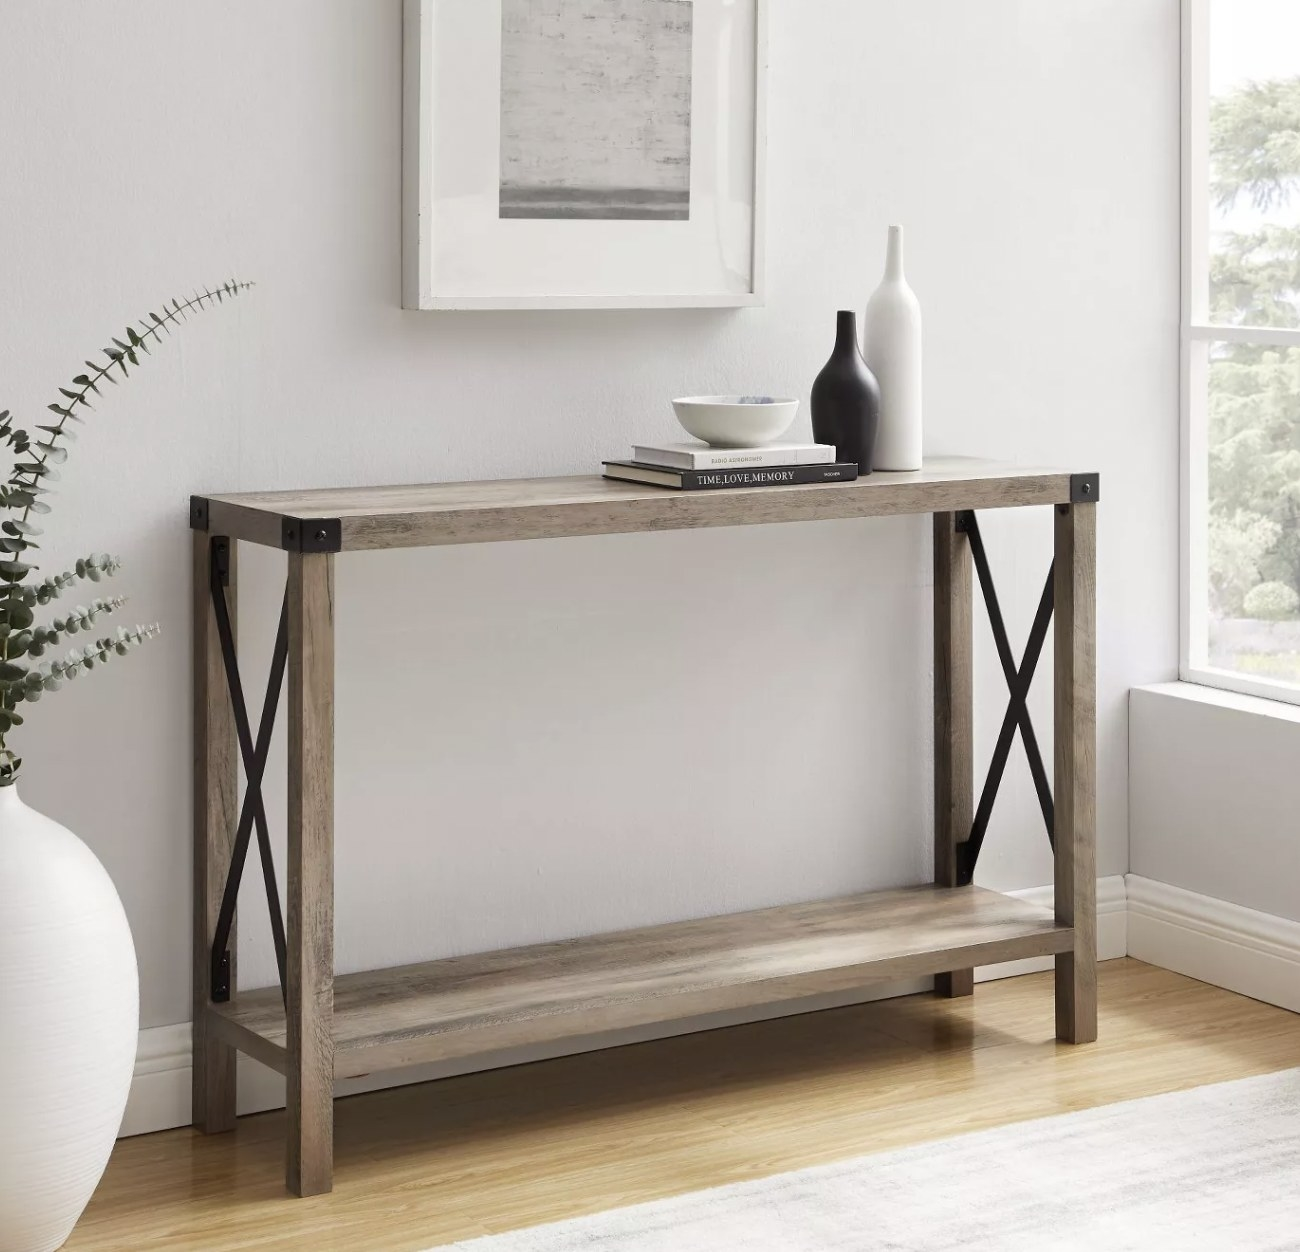 a grey-beige thin console table with black metal hardware, holding decor on its top shelf with an empty bottom shelf